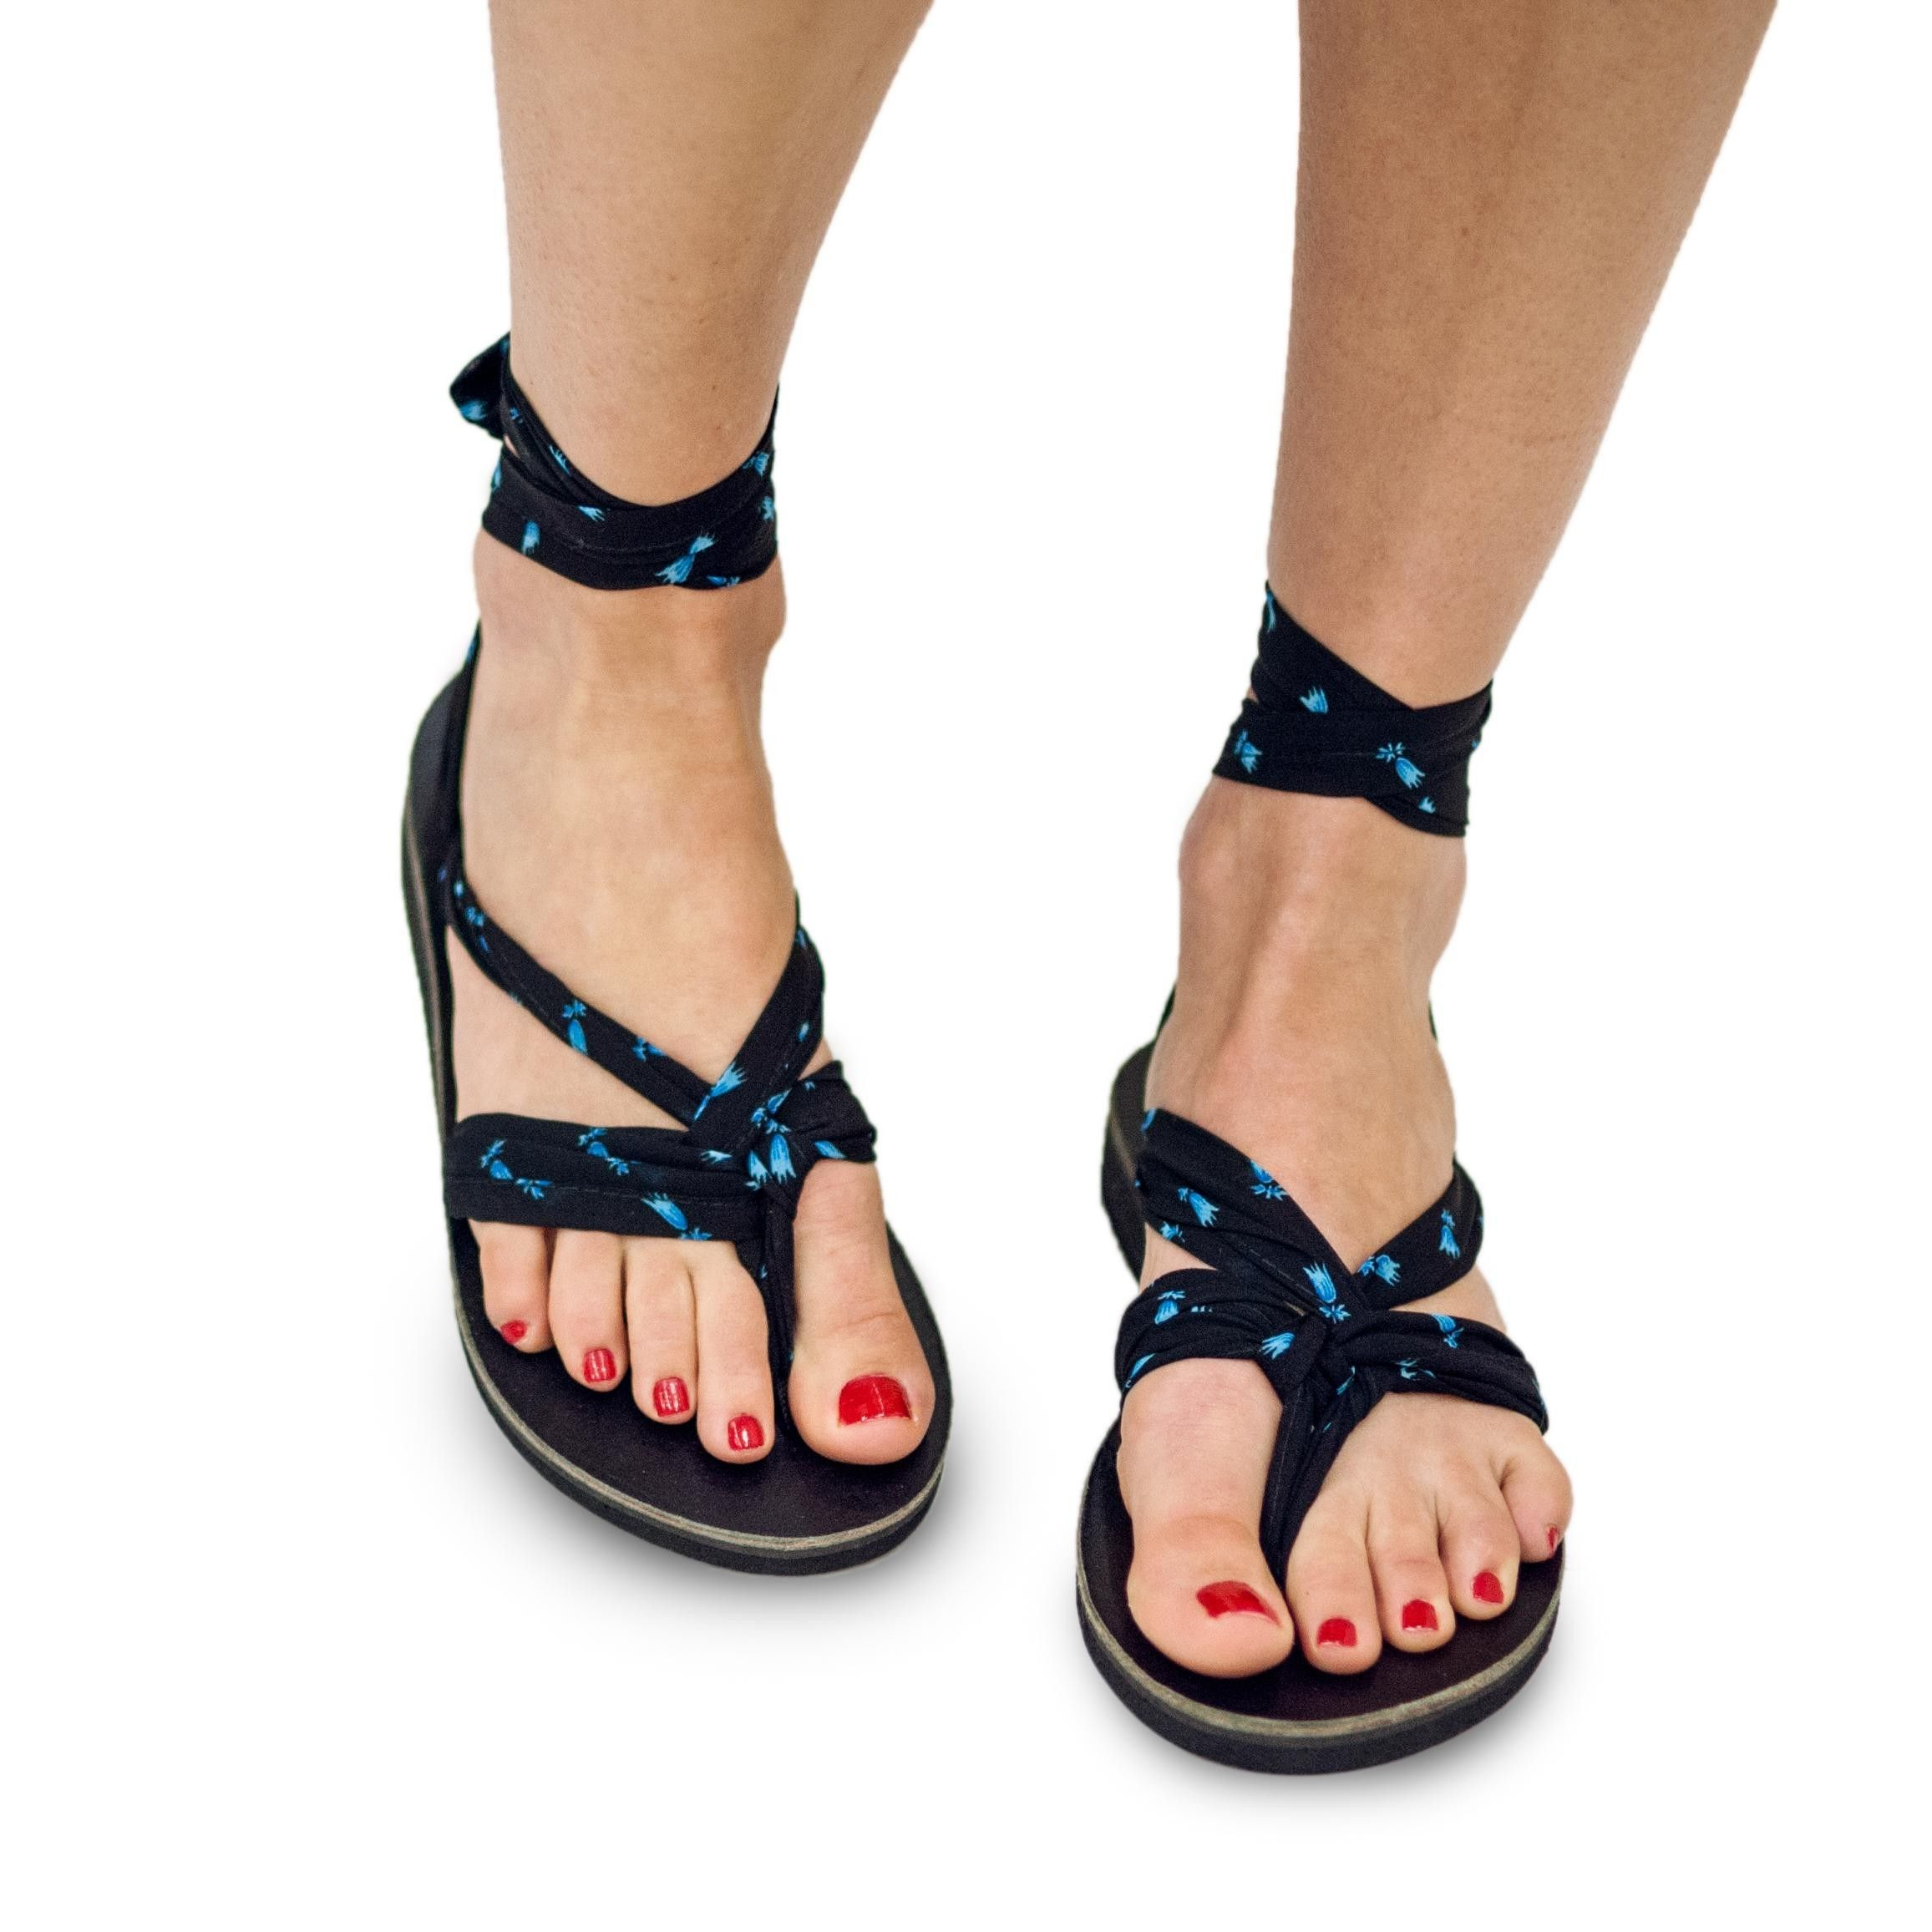 Black ribbon sandals - The Majorette Chiffon Sandal Ribbons Are Soft Black Chiffon Ribbons With A Blue Floral Design That Can Be Paired With Any Sseko Ribbon Sandal